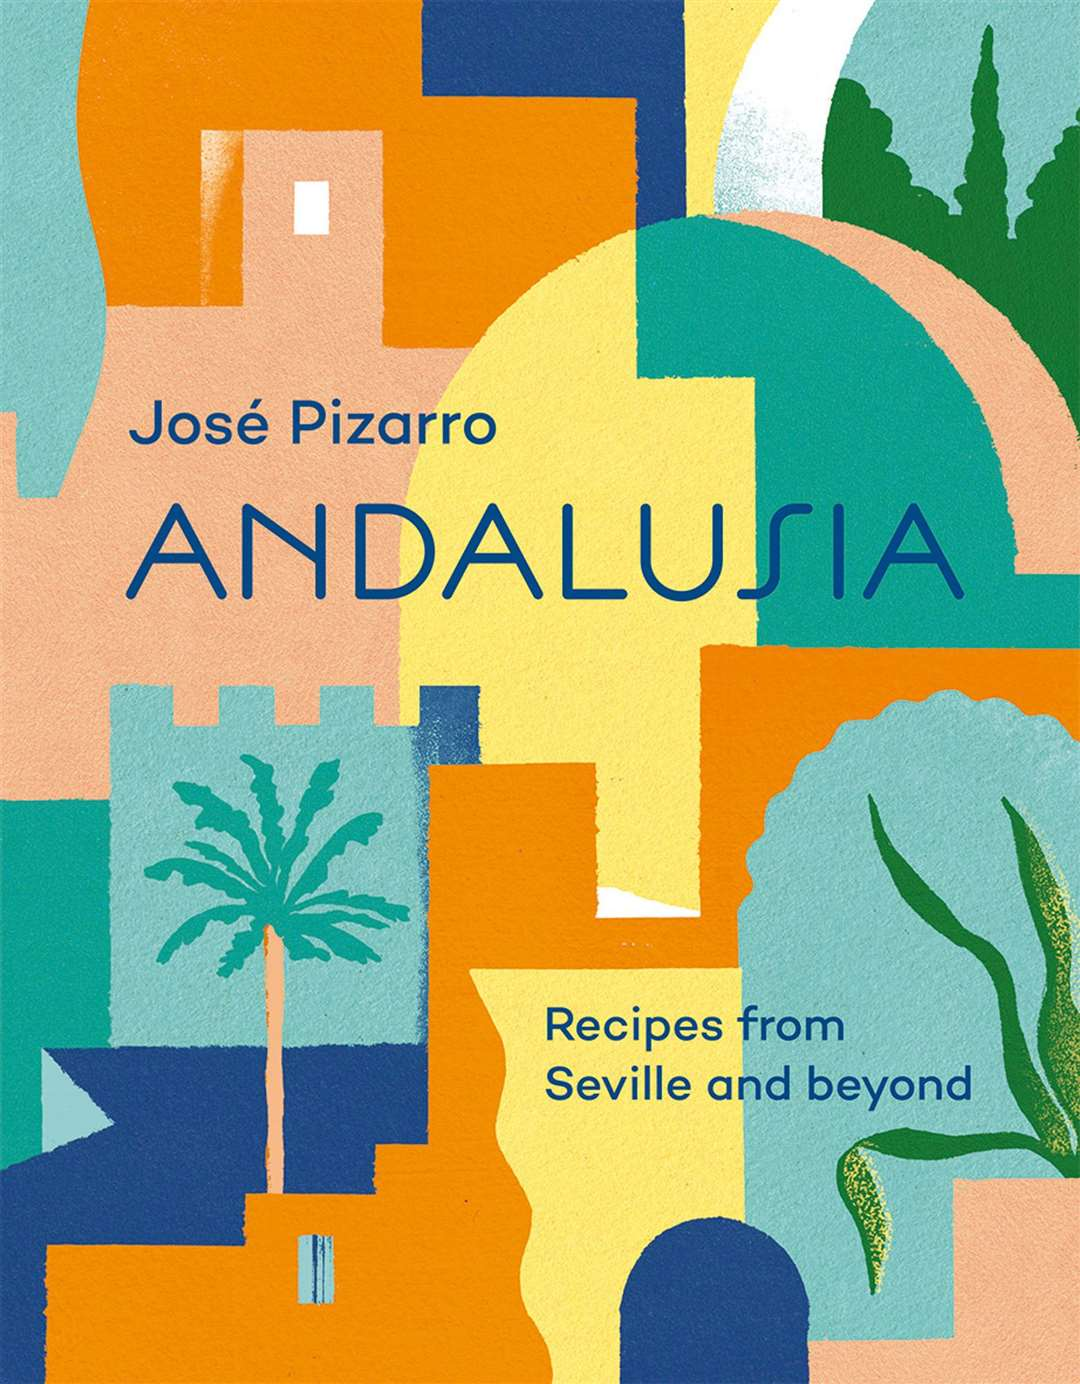 Andalusia: Recipes from Seville and beyond by Jose Pizarro (Hardie Grant, £26). Picture: PA Photo/Emma Lee